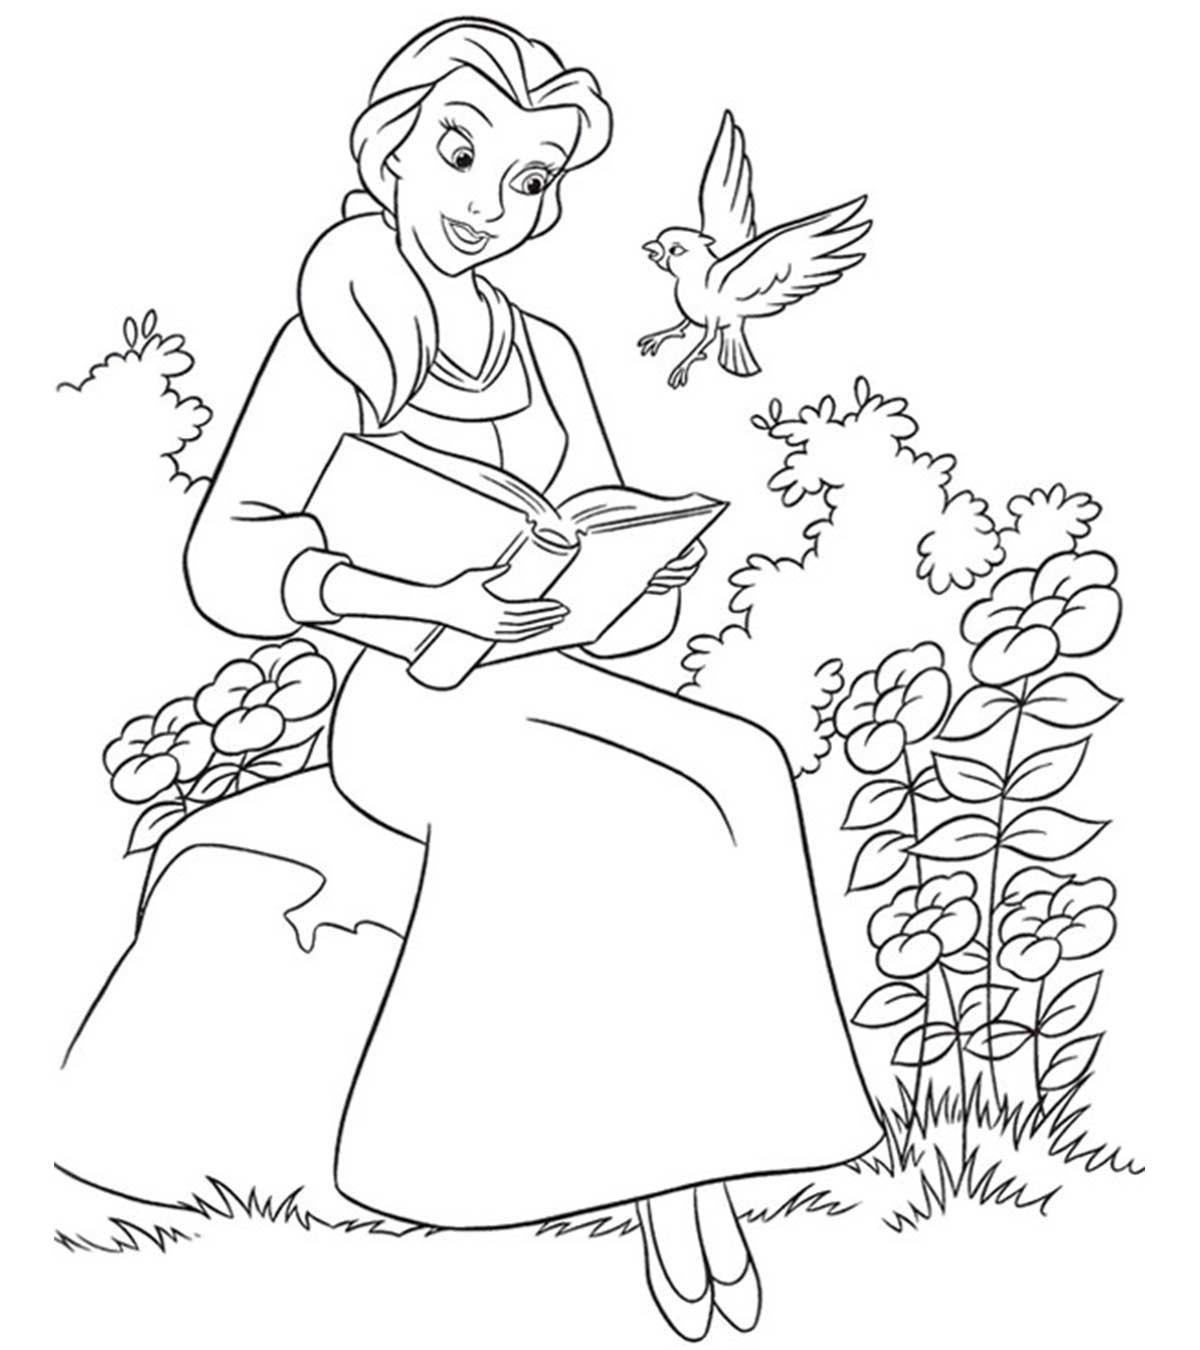 image regarding Beauty and the Beast Printable Coloring Pages named Ultimate 10 Free of charge Printable Attractiveness And The Beast Coloring Webpages On line